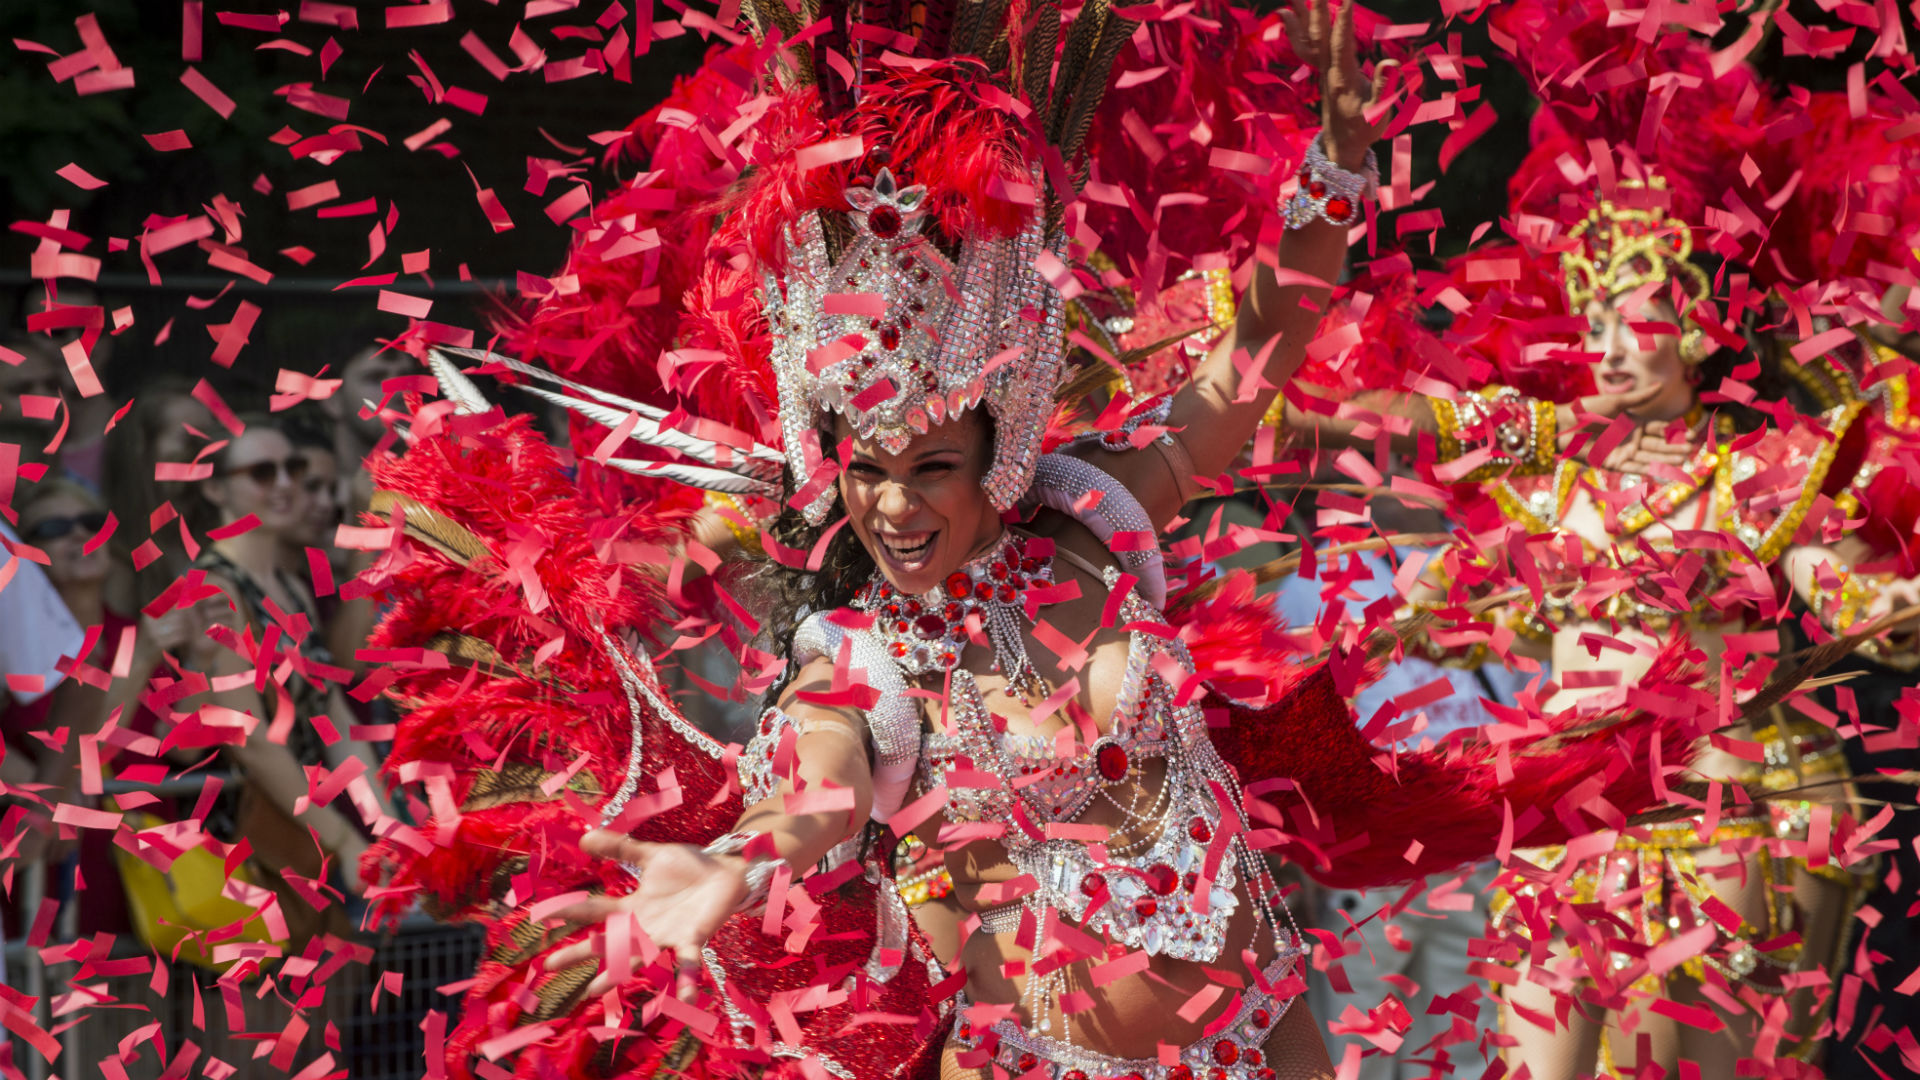 A Notting Hill Carnival performer dances while surrounded by confetti